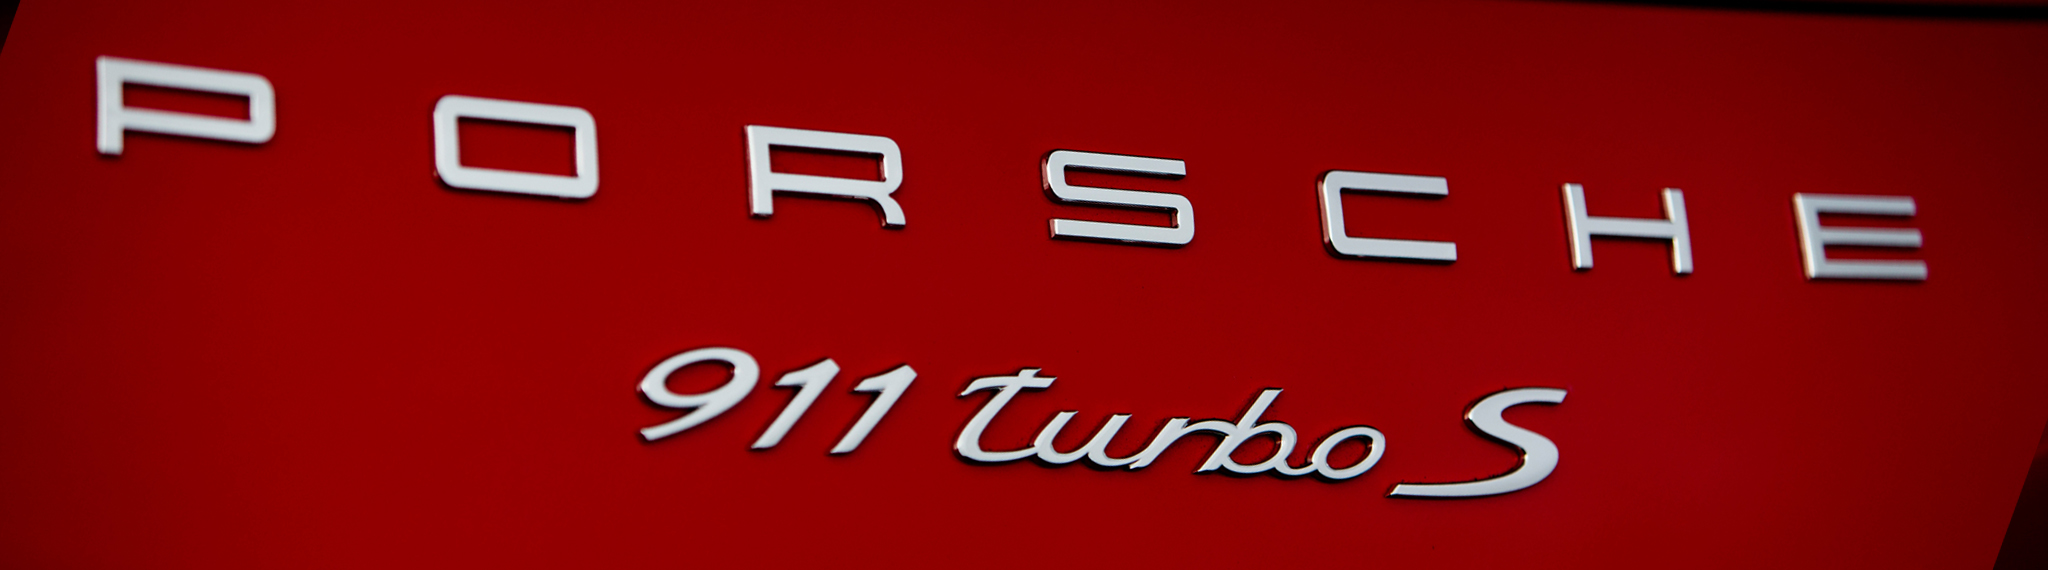 Porsche Logo Meaning And History Latest Models World Cars Brands